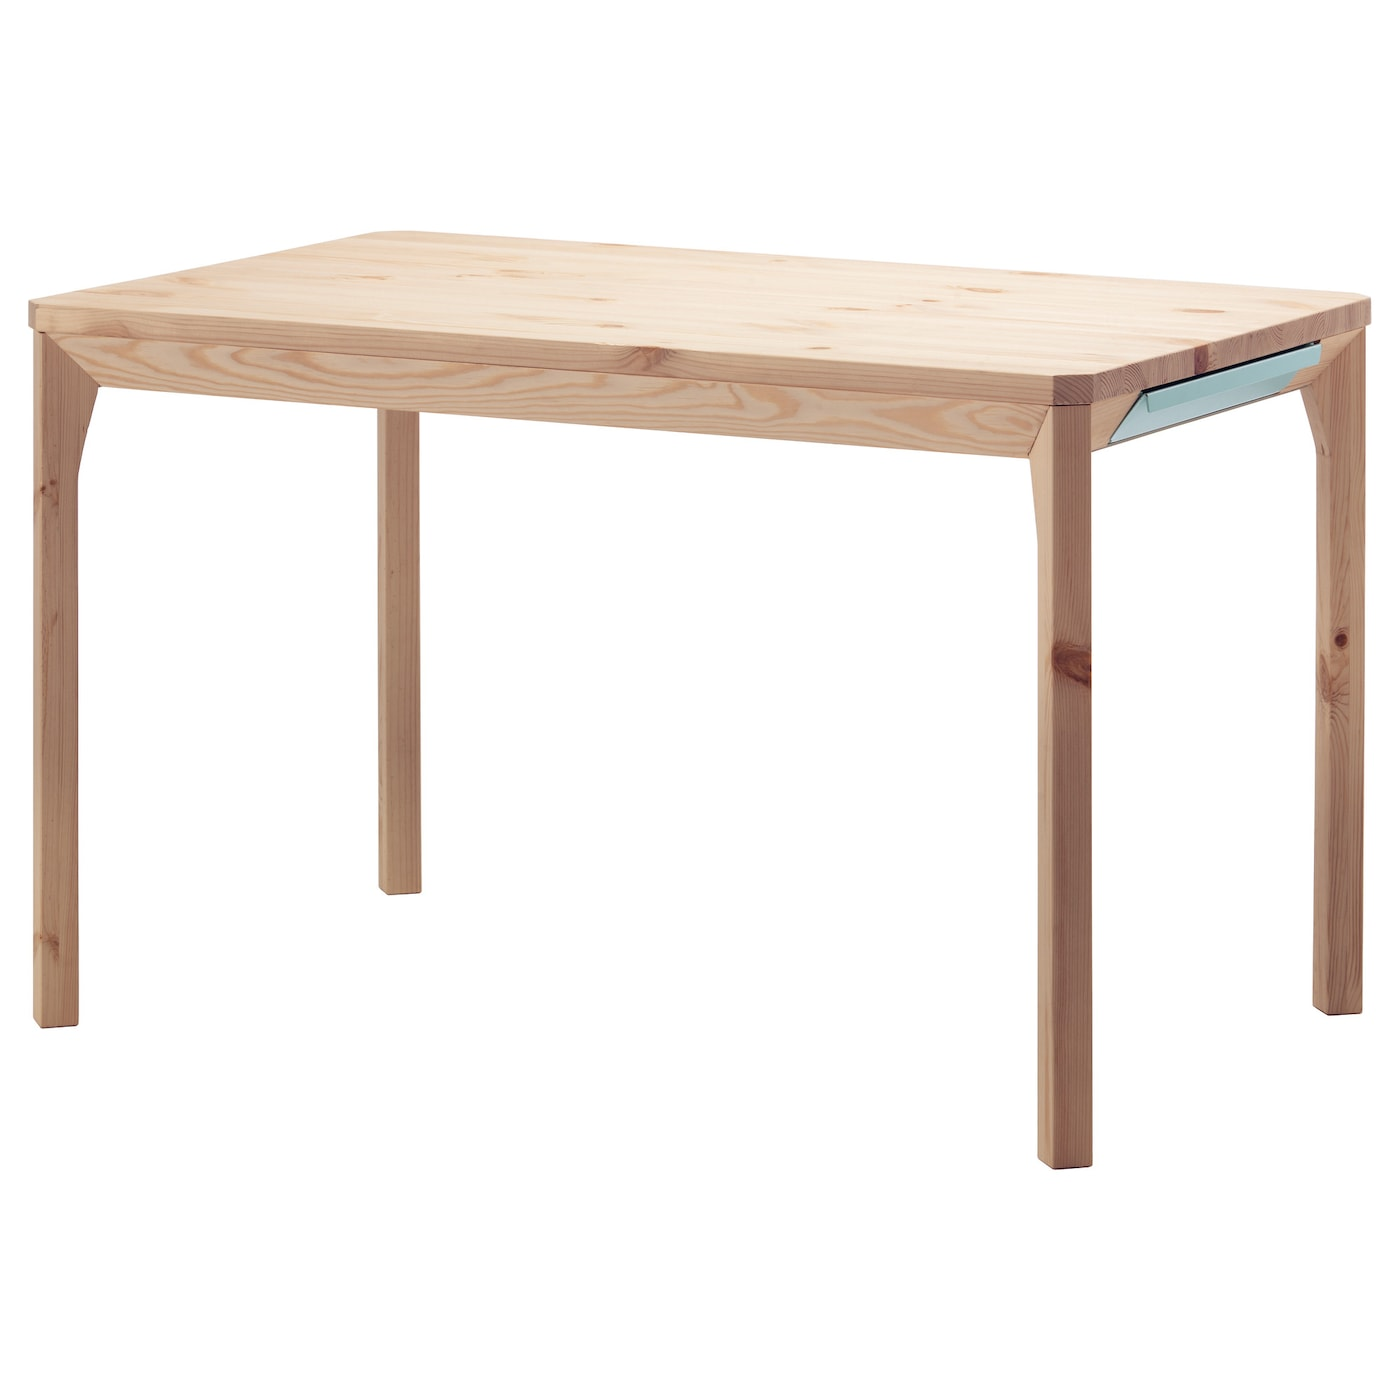 Esstisch 75x75 : IKEA IKEA PS 2014 table Solid pine; a natural material that ages ...